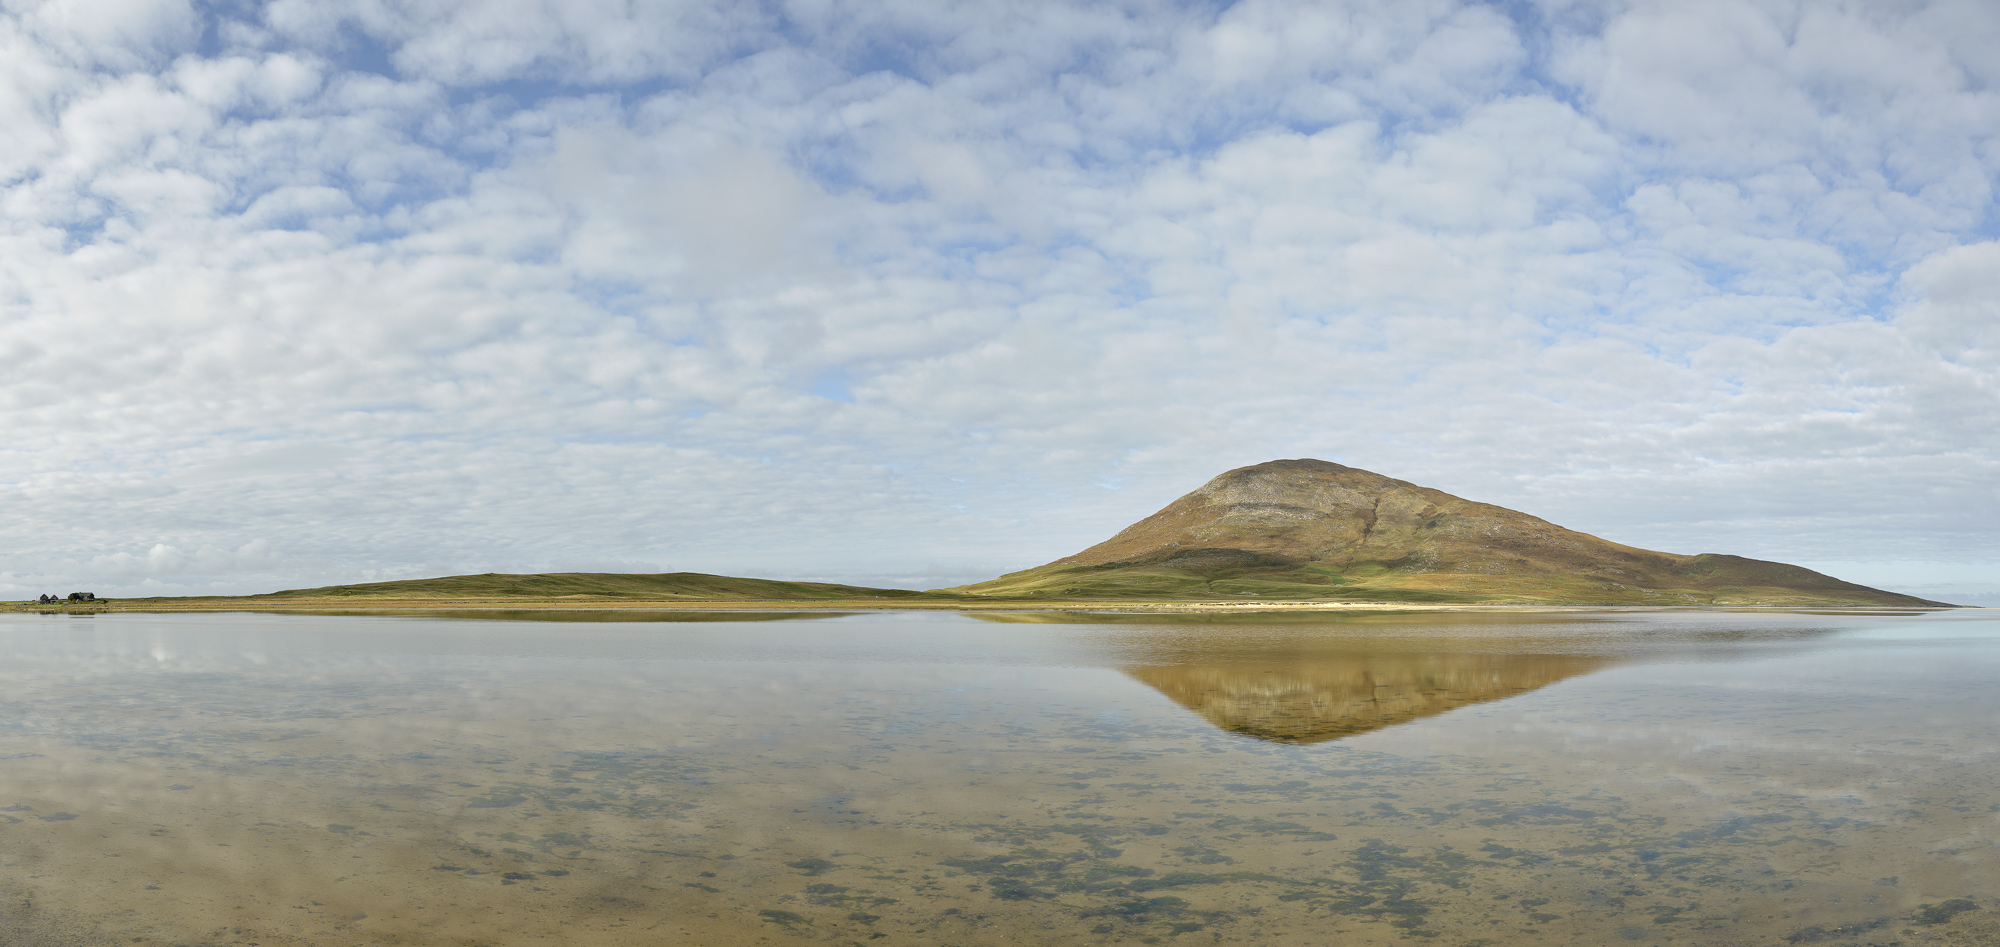 Scarasta Salt Marsh Pano, Scarasta, Harris, Scotland, lucky, immense, reflection, Celapabhal, shallow, salt marsh, cotta, photo